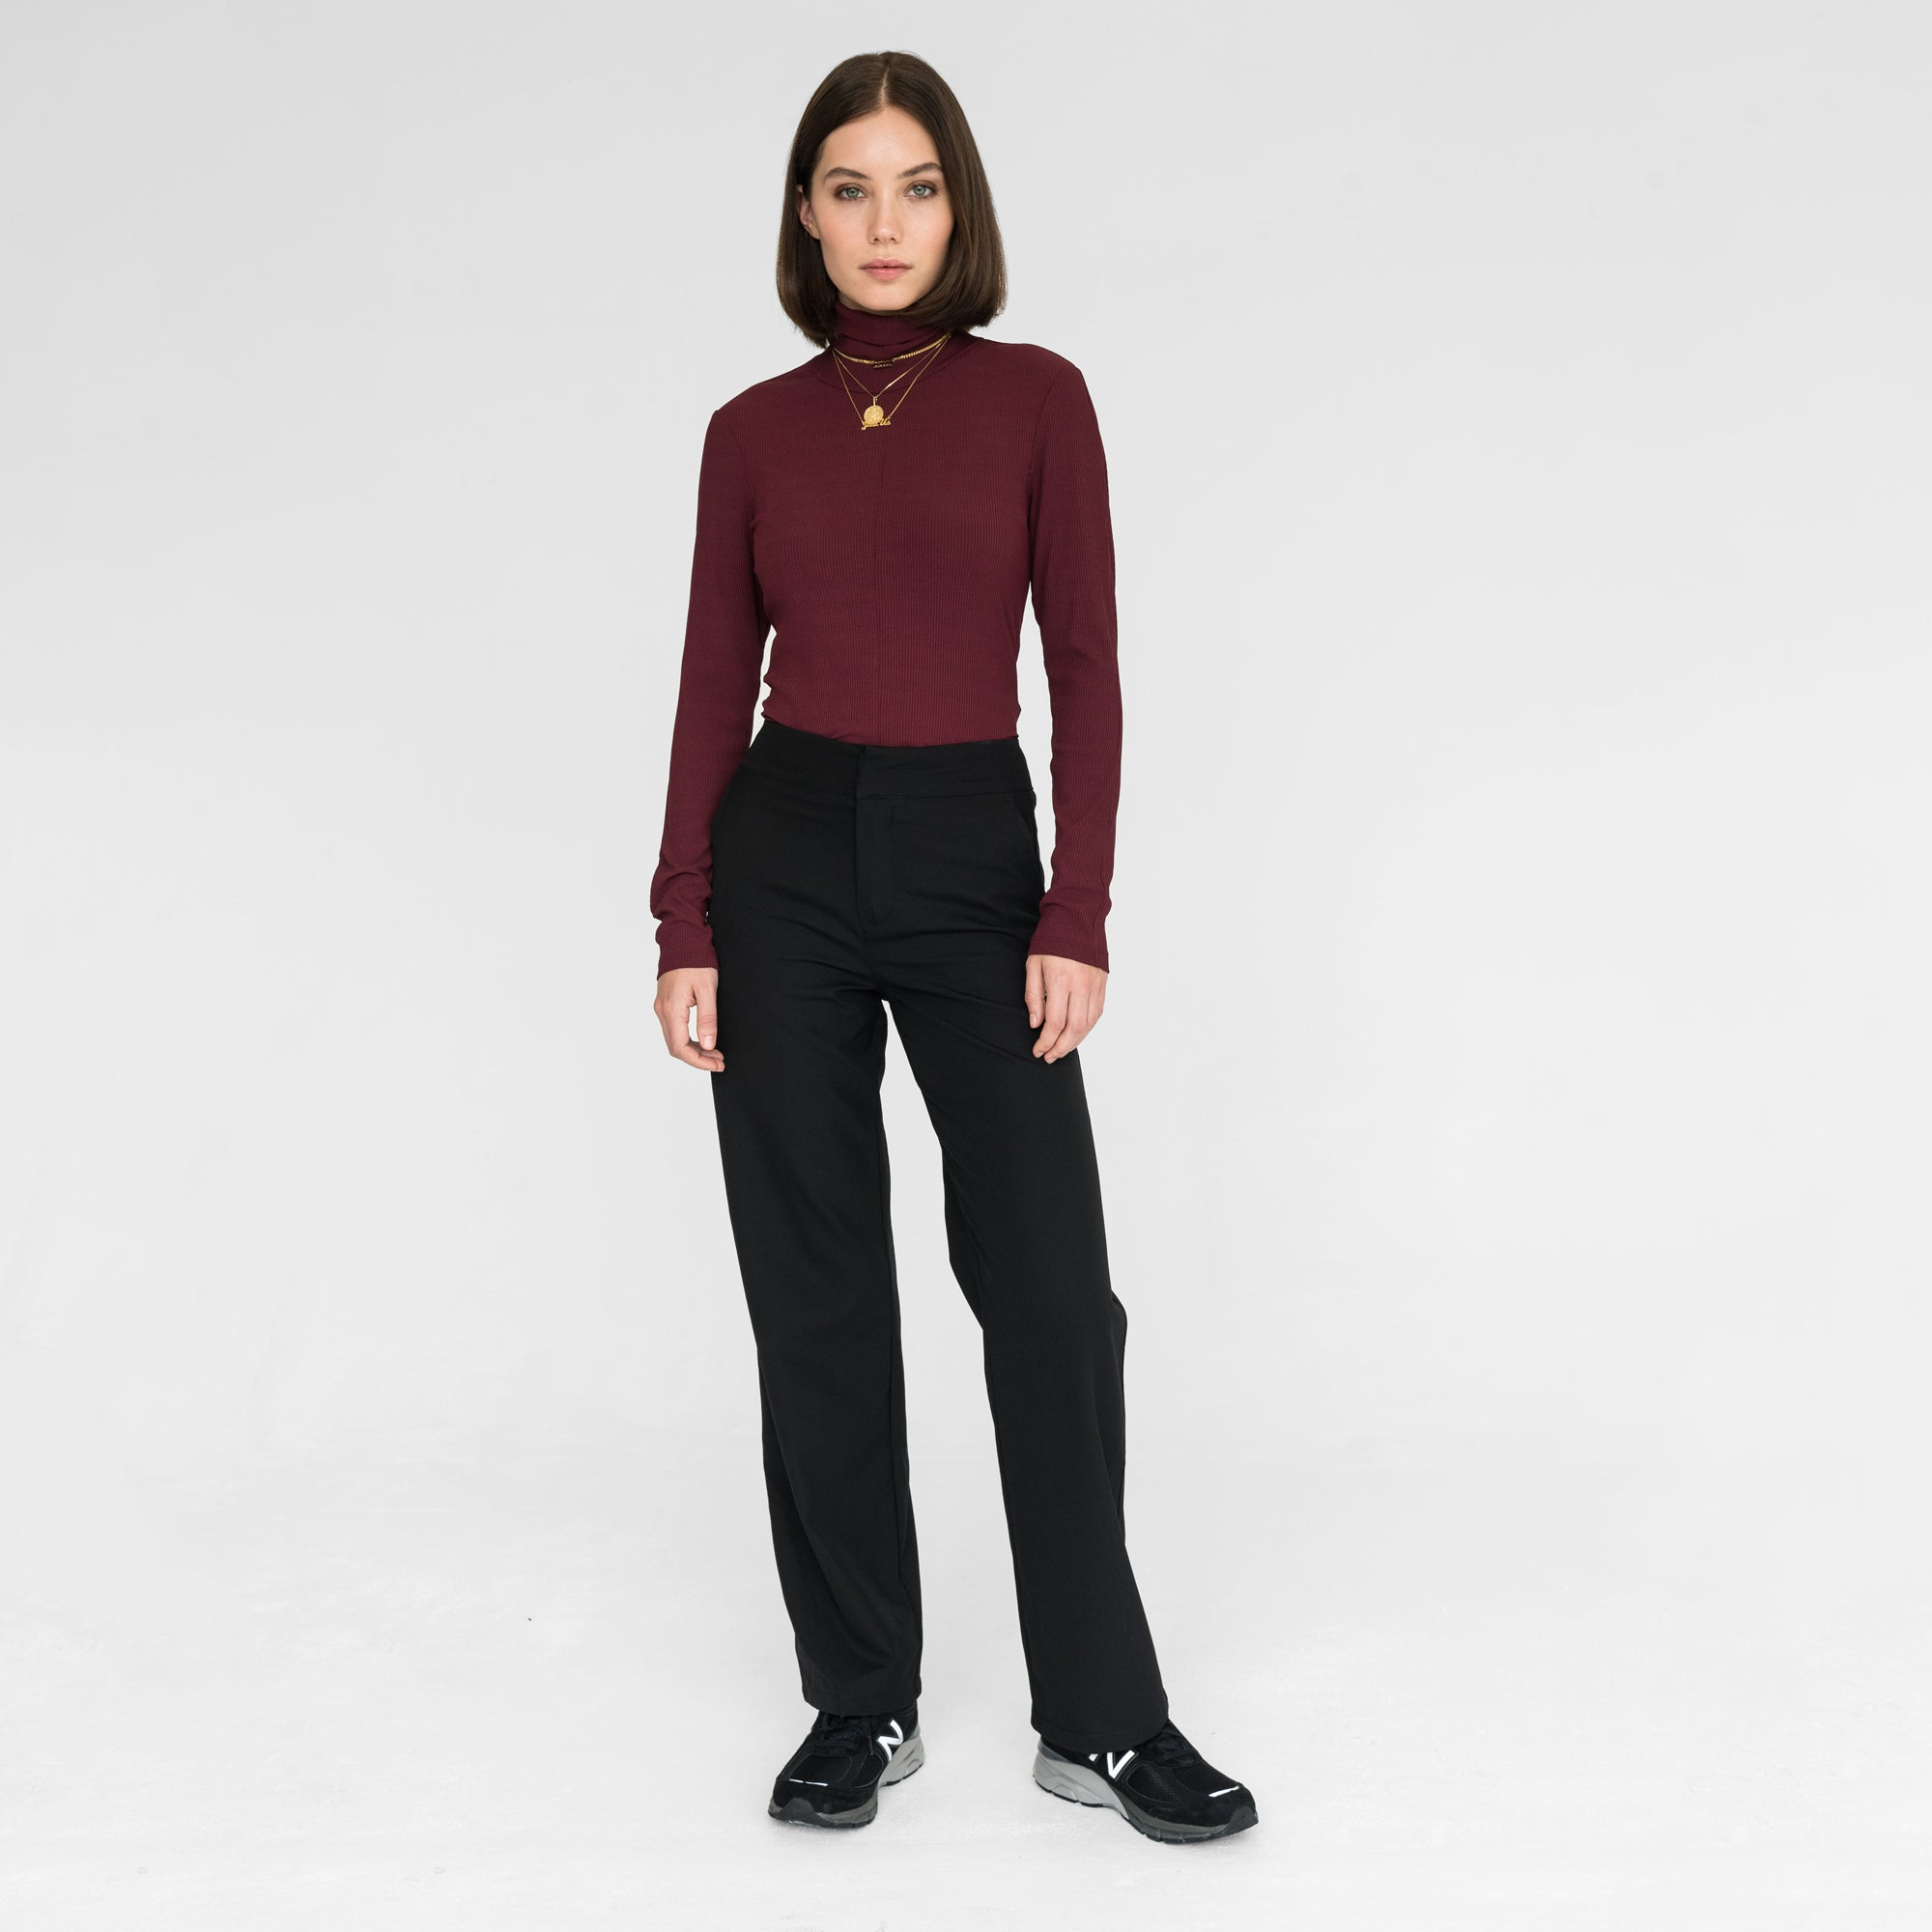 Kith Women Brynn L/S Turtleneck - Wine